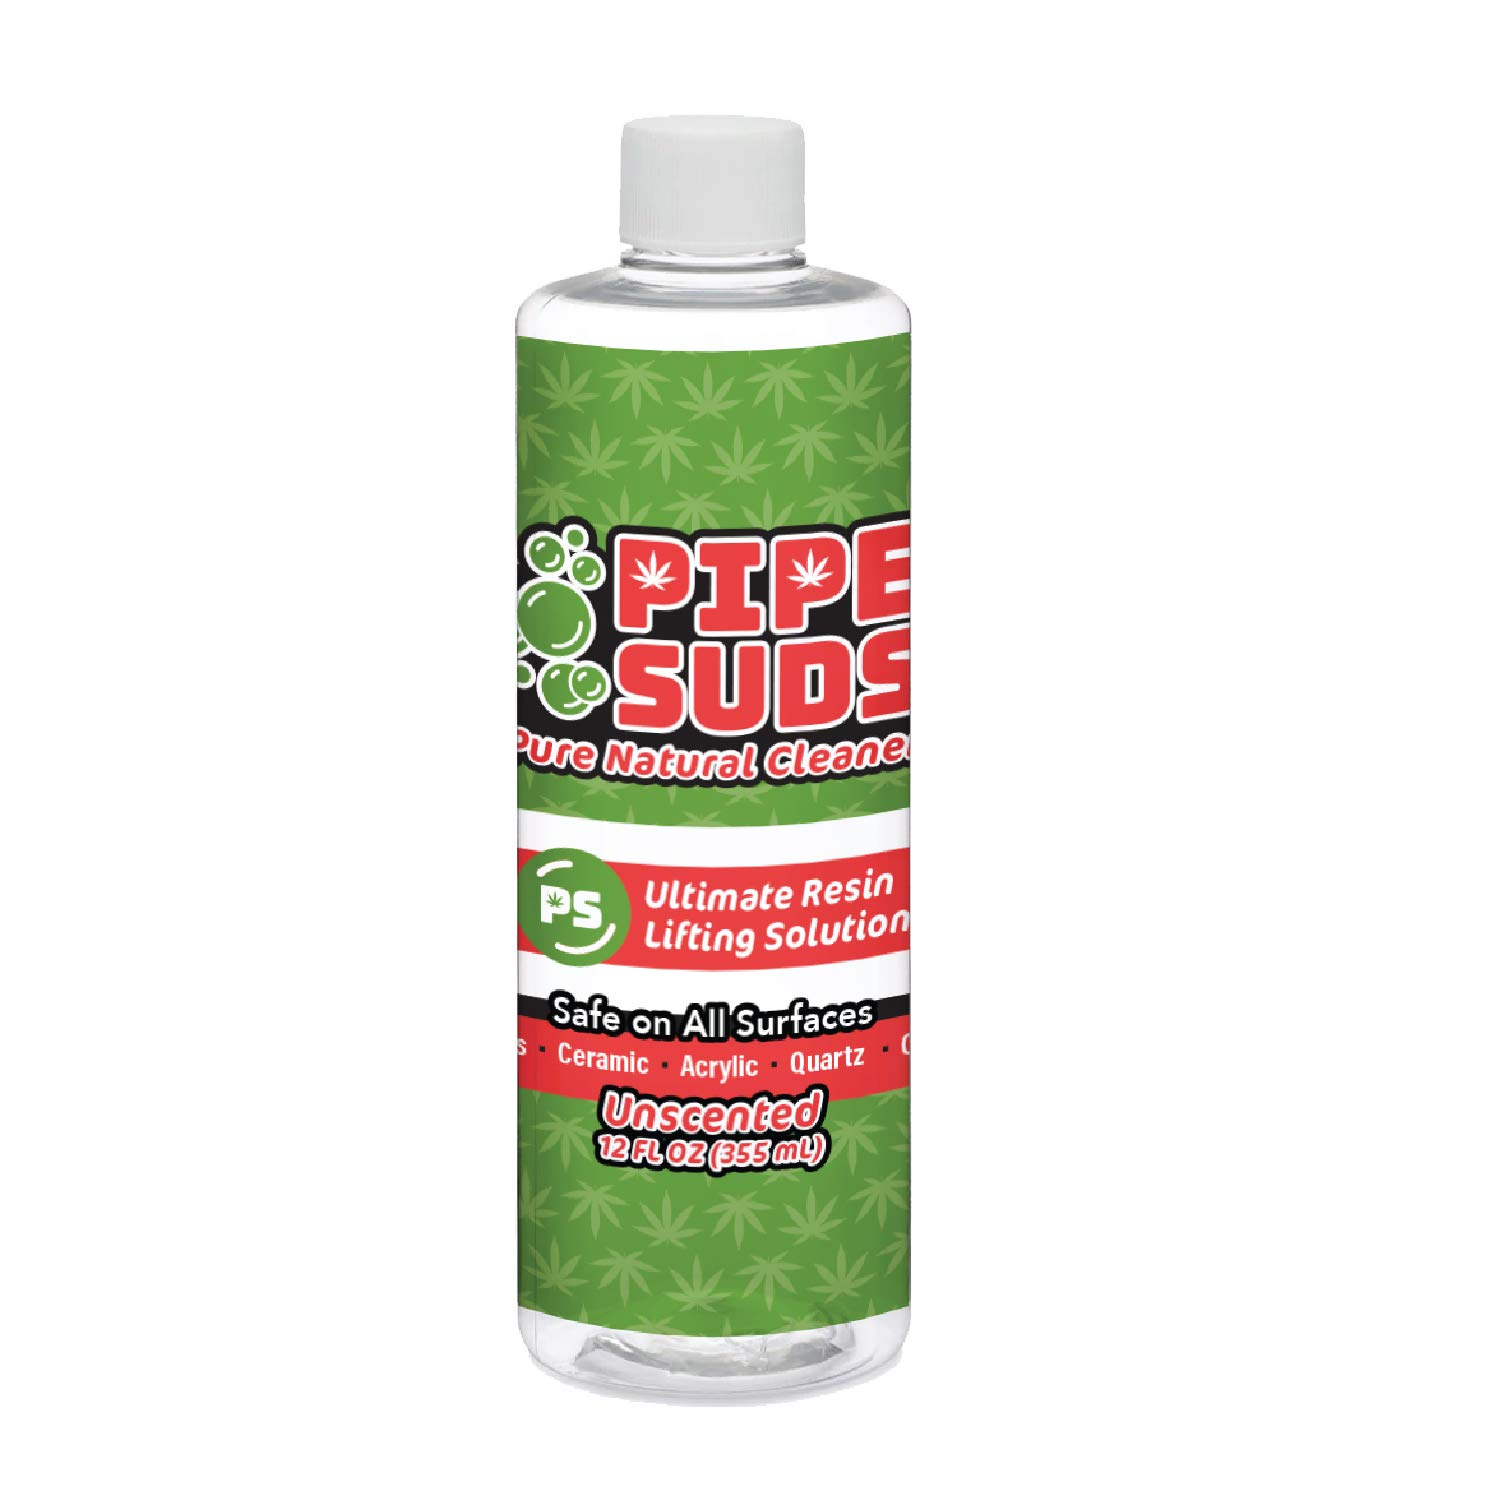 Pipe Suds Pure Natural Bong, Pipe-Bubbler, Vape, Glass, Acrylic, Ceramic Cleaner, 12oz. Unscented by EcoPro Natural, Inc.